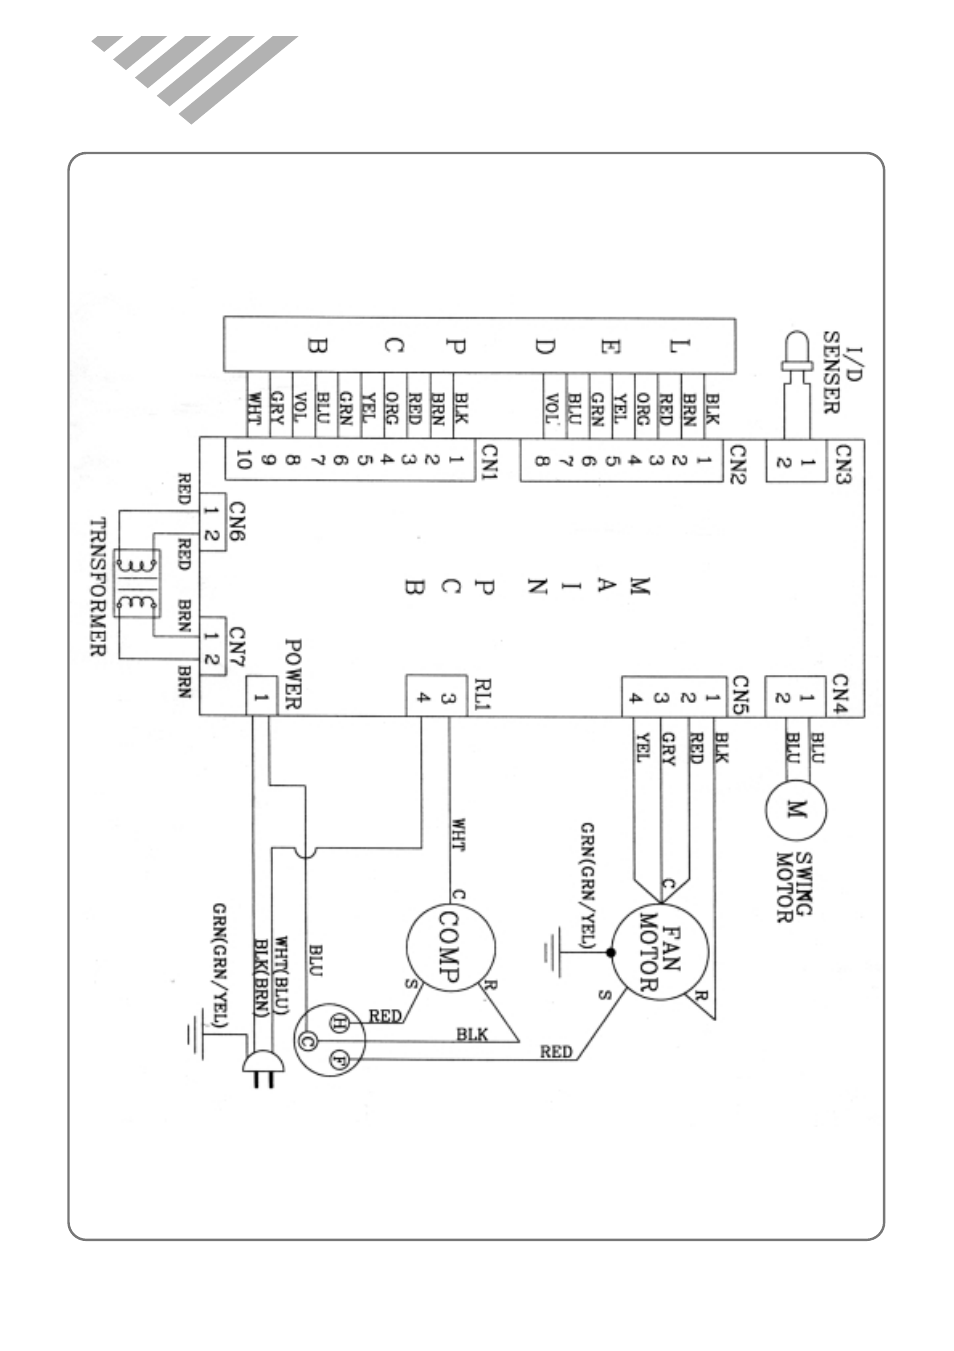 air conditioner wiring diagram troubleshooting mid position valve daewoo room dwc 121r user manual page 13